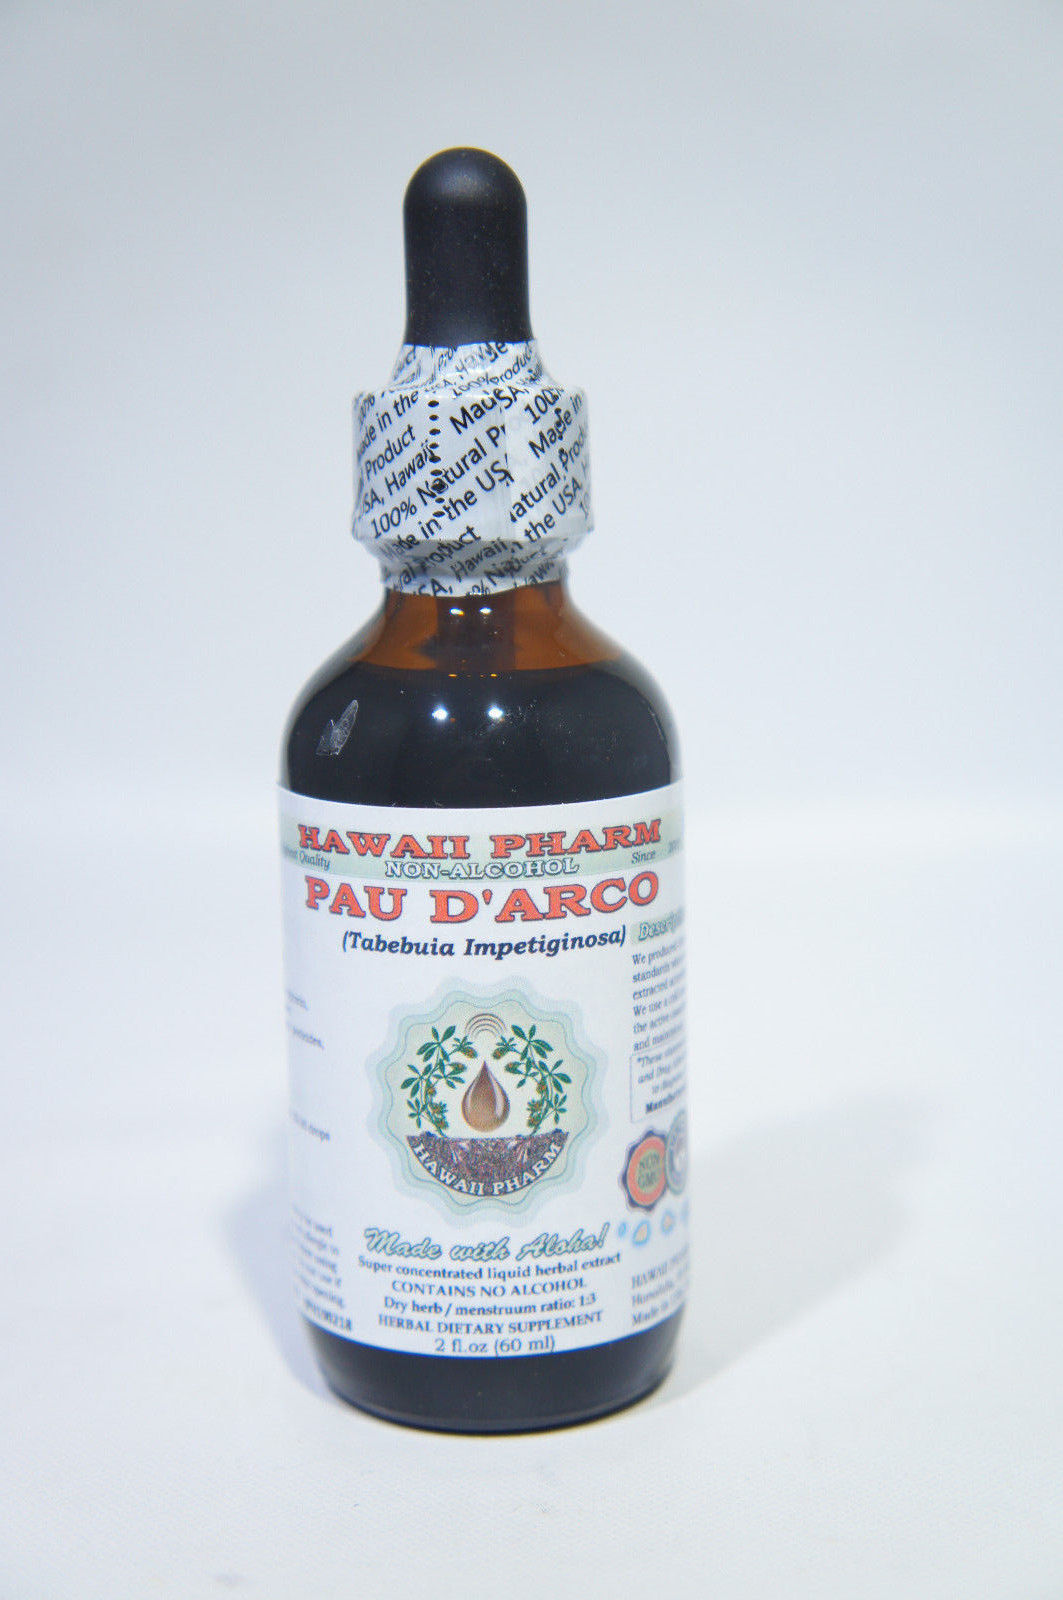 Pau d'arco Alcohol-FREE Liquid Extract, Pau d'arco Liquid 2 oz. EXP: 2/6/23